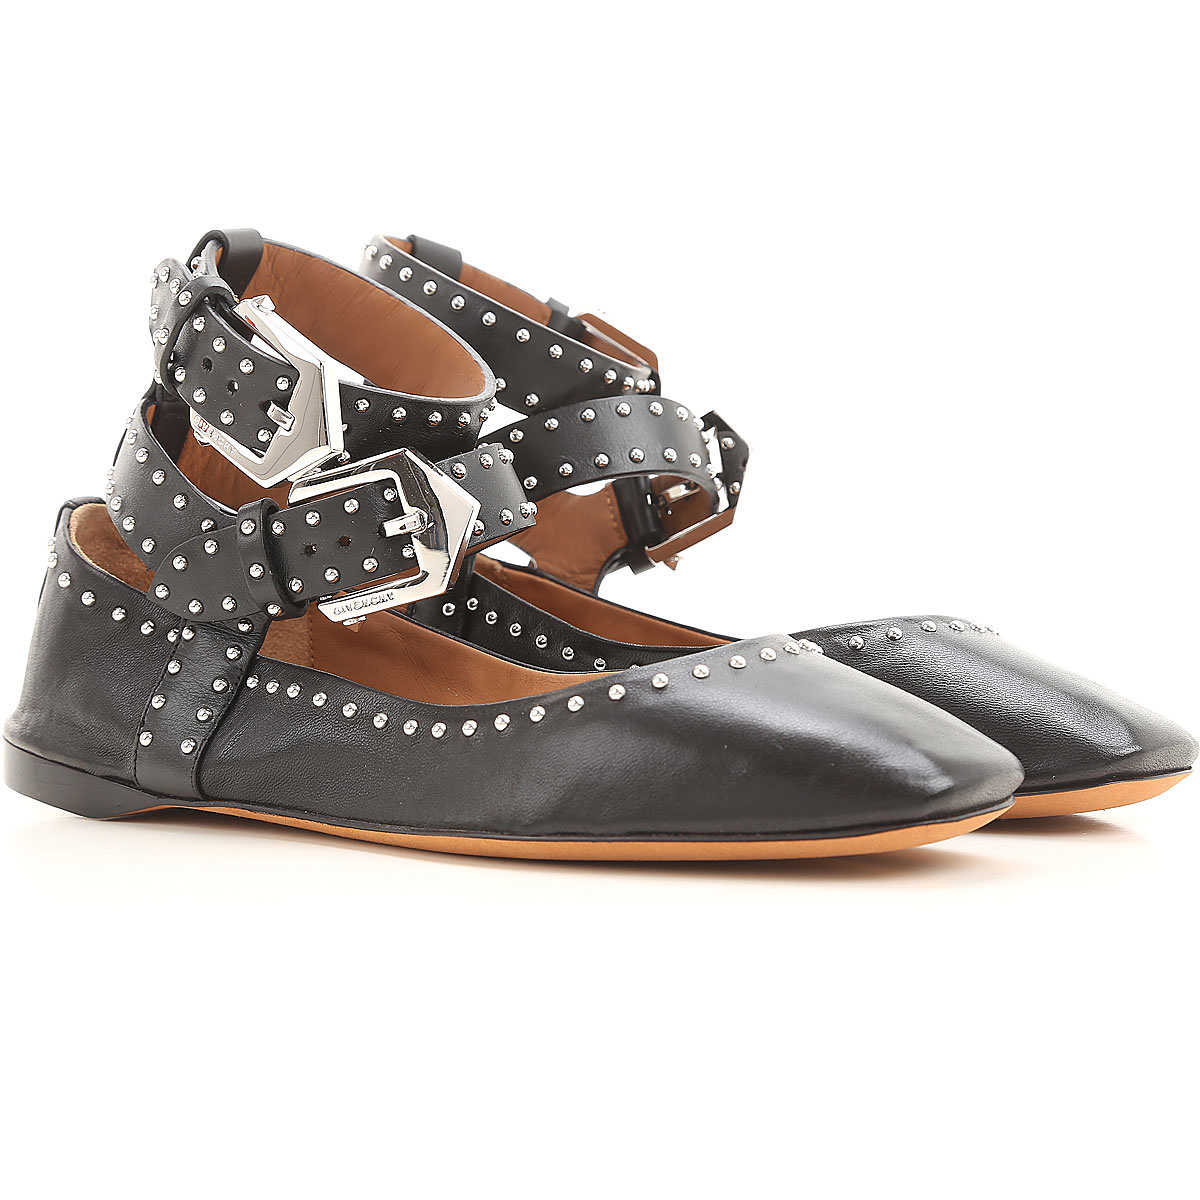 Givenchy Ballet Flats Ballerina Shoes for Women On Sale in Outlet Black UK - GOOFASH